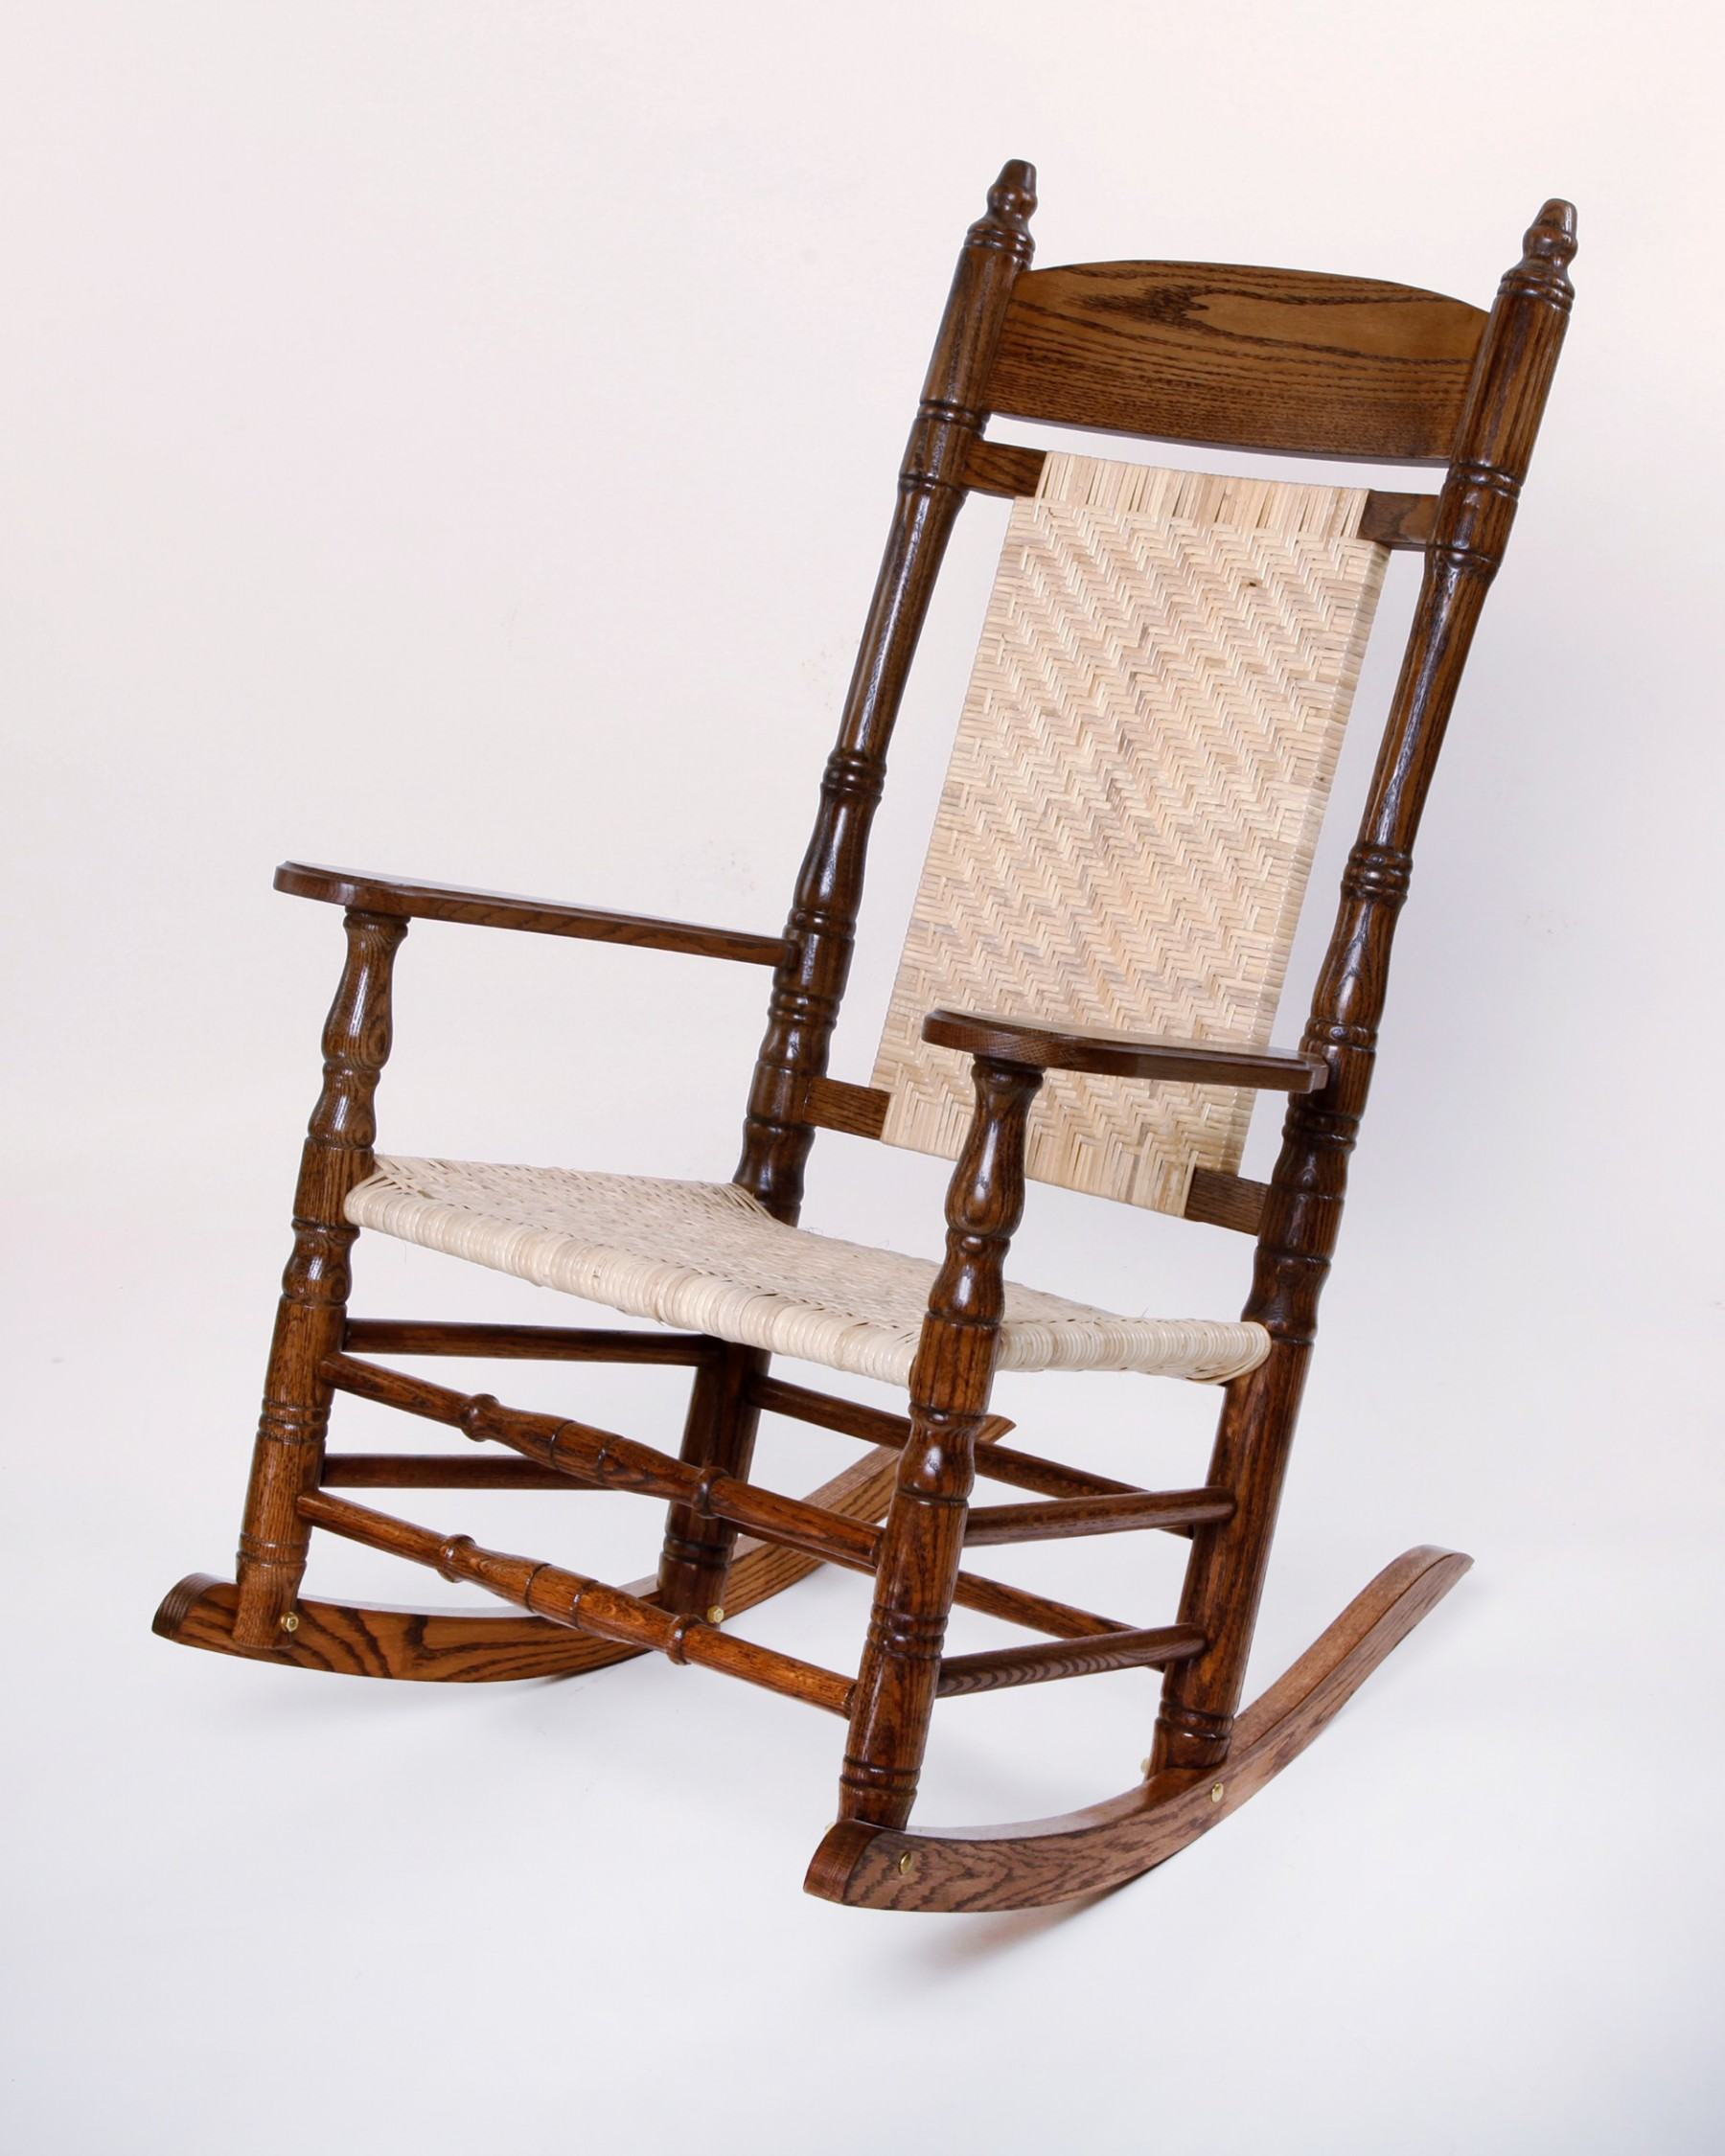 Phenomenal The Brumby Chair Company Rocking Chair Caraccident5 Cool Chair Designs And Ideas Caraccident5Info